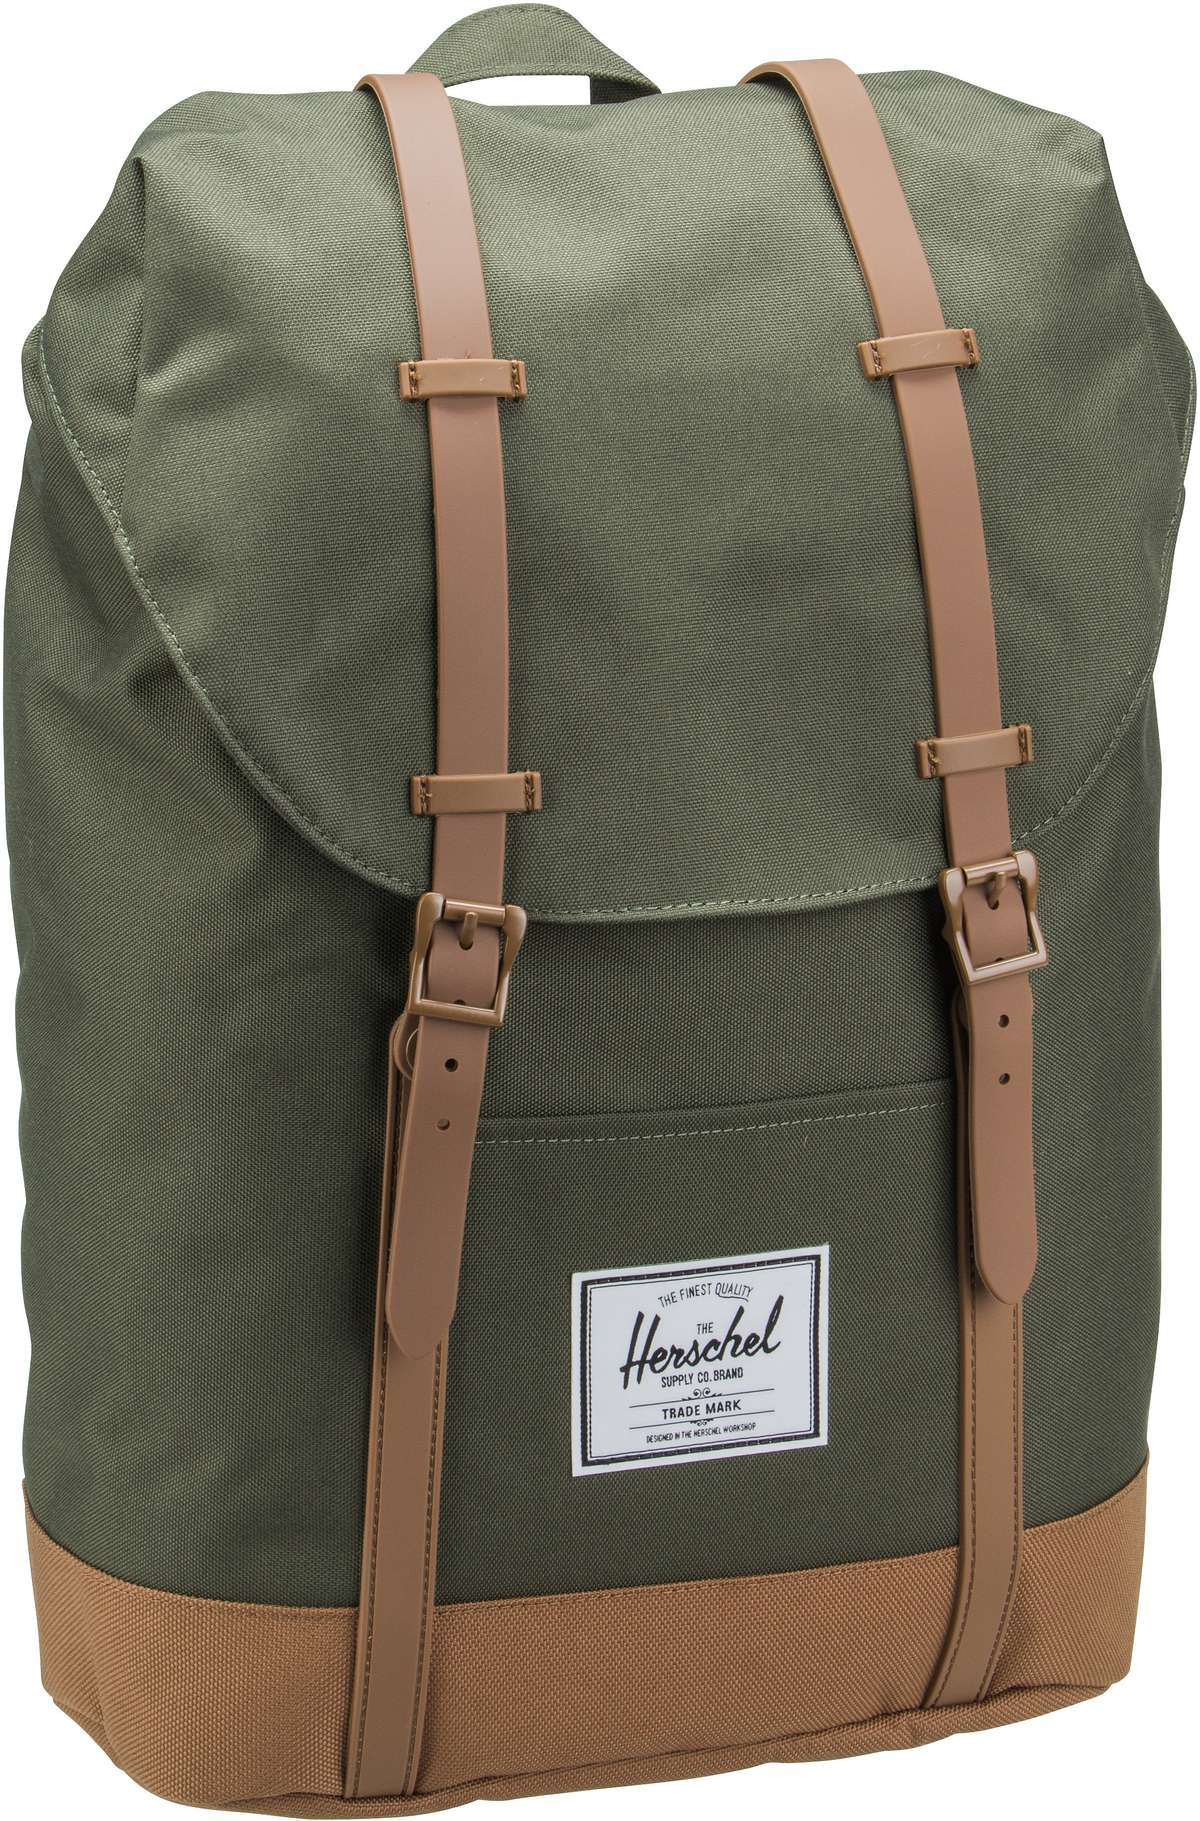 Laptoprucksack Retreat Dark Olive/Saddle Brown (19.5 Liter)